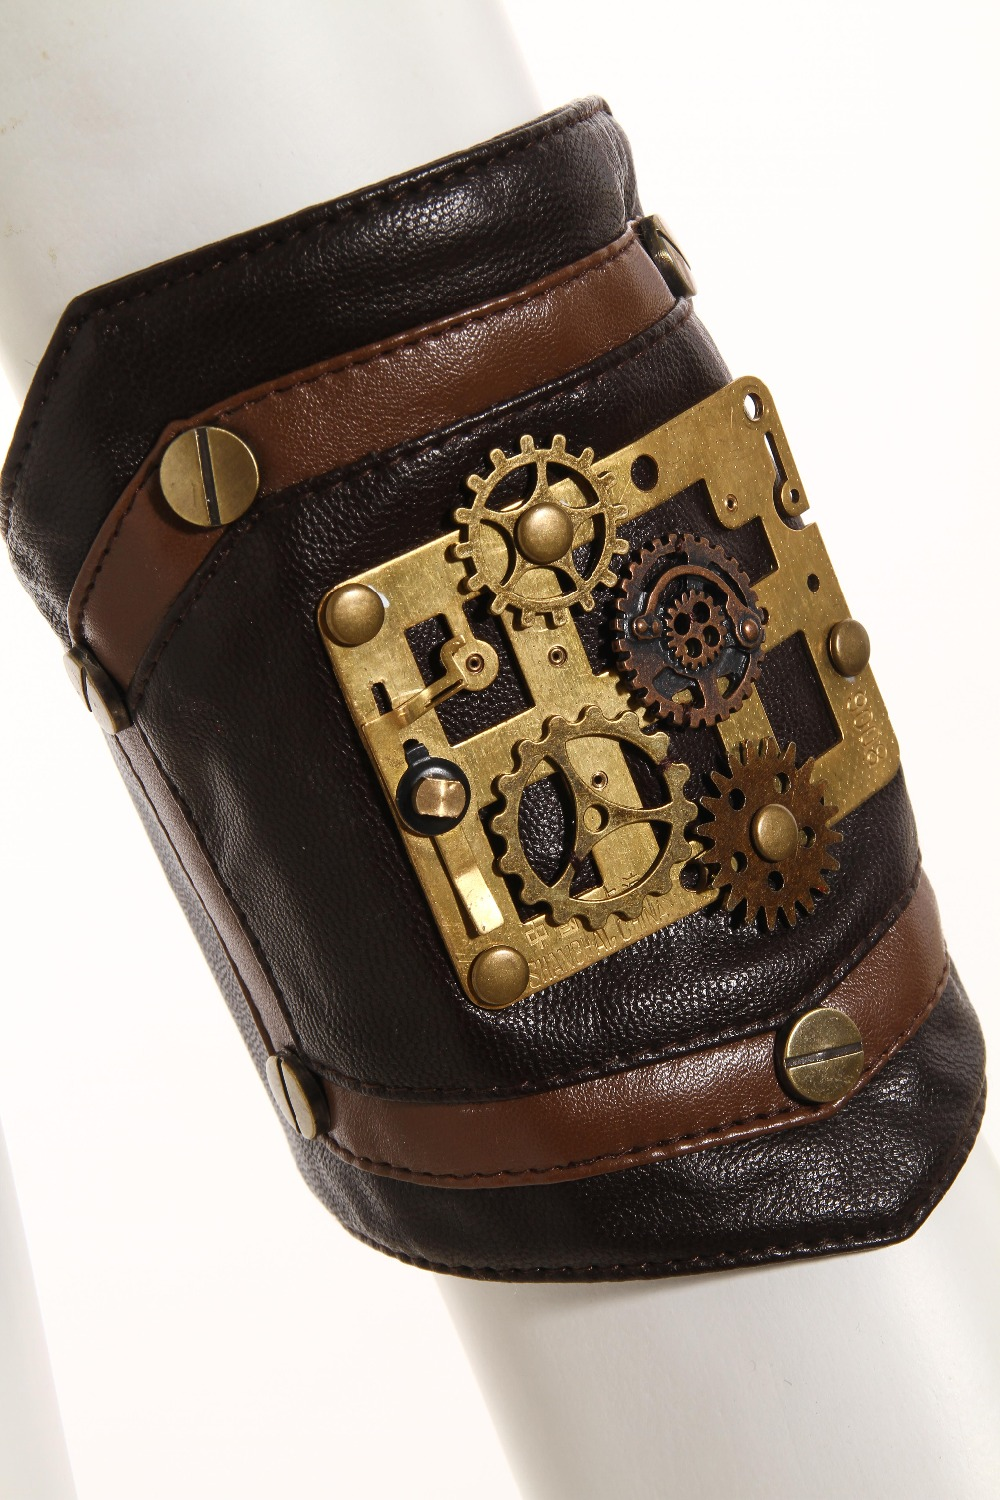 RQ Series Steampunk Gothic Women Wristband Coffee PU Leather Wristlet For Ladies Arm Sleeve With Gear And Button